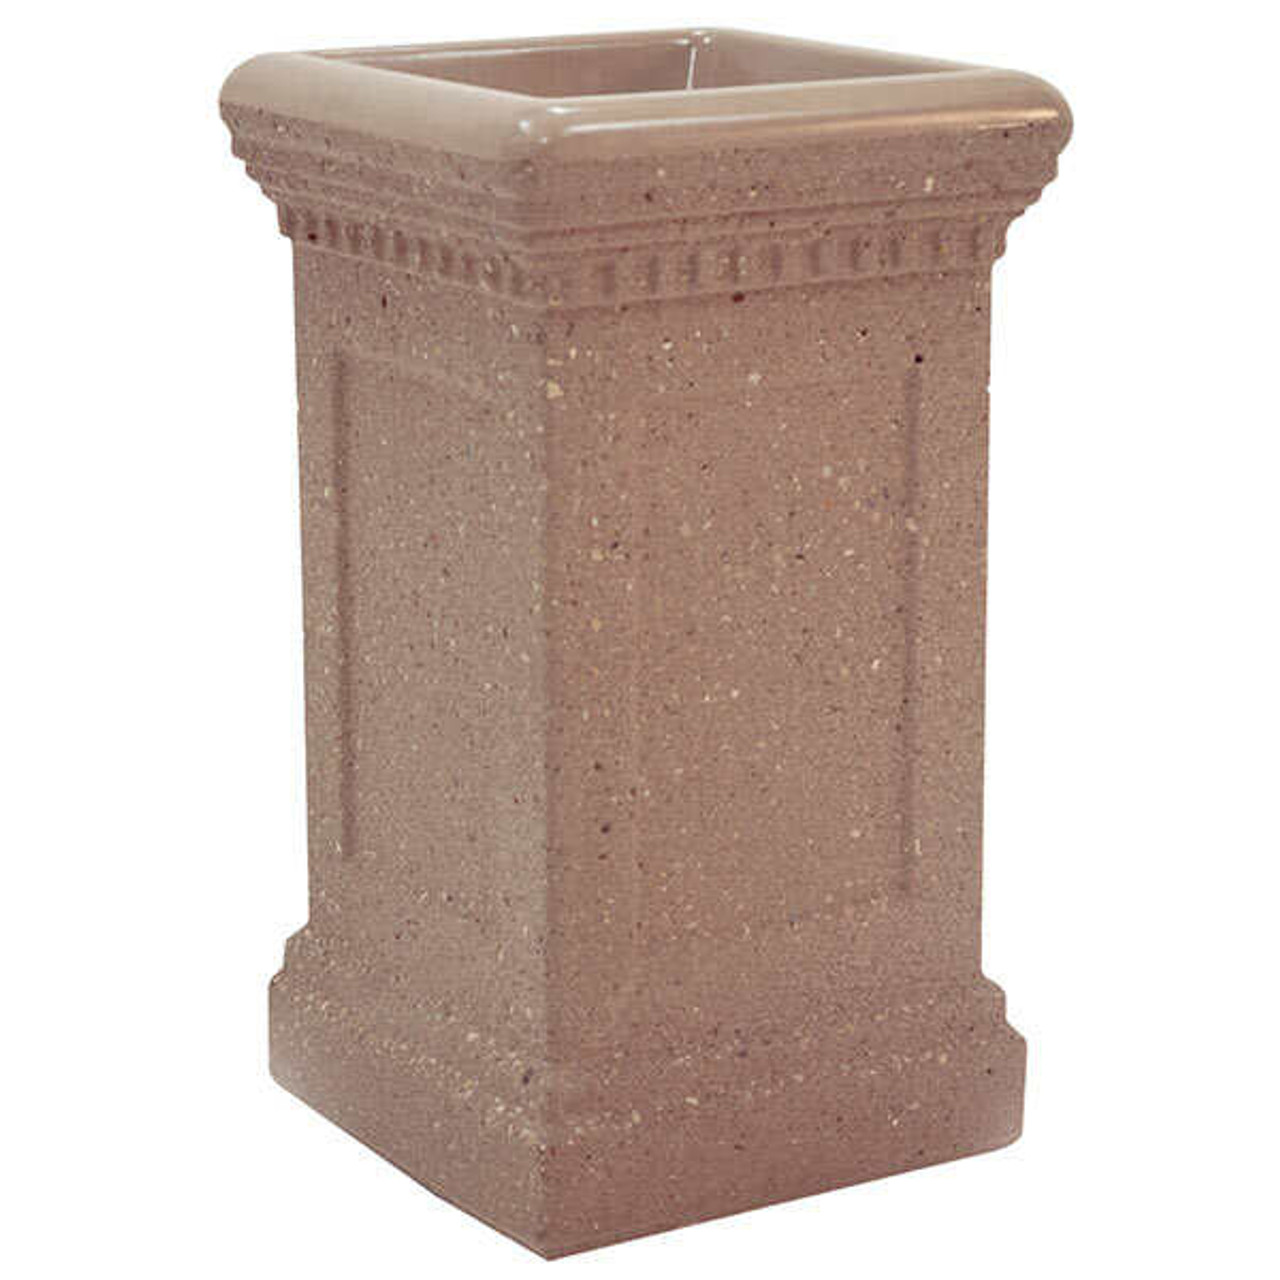 Concrete Colonial Ash Urn Outdoor Ashtray Smokers Receptacle TF2036